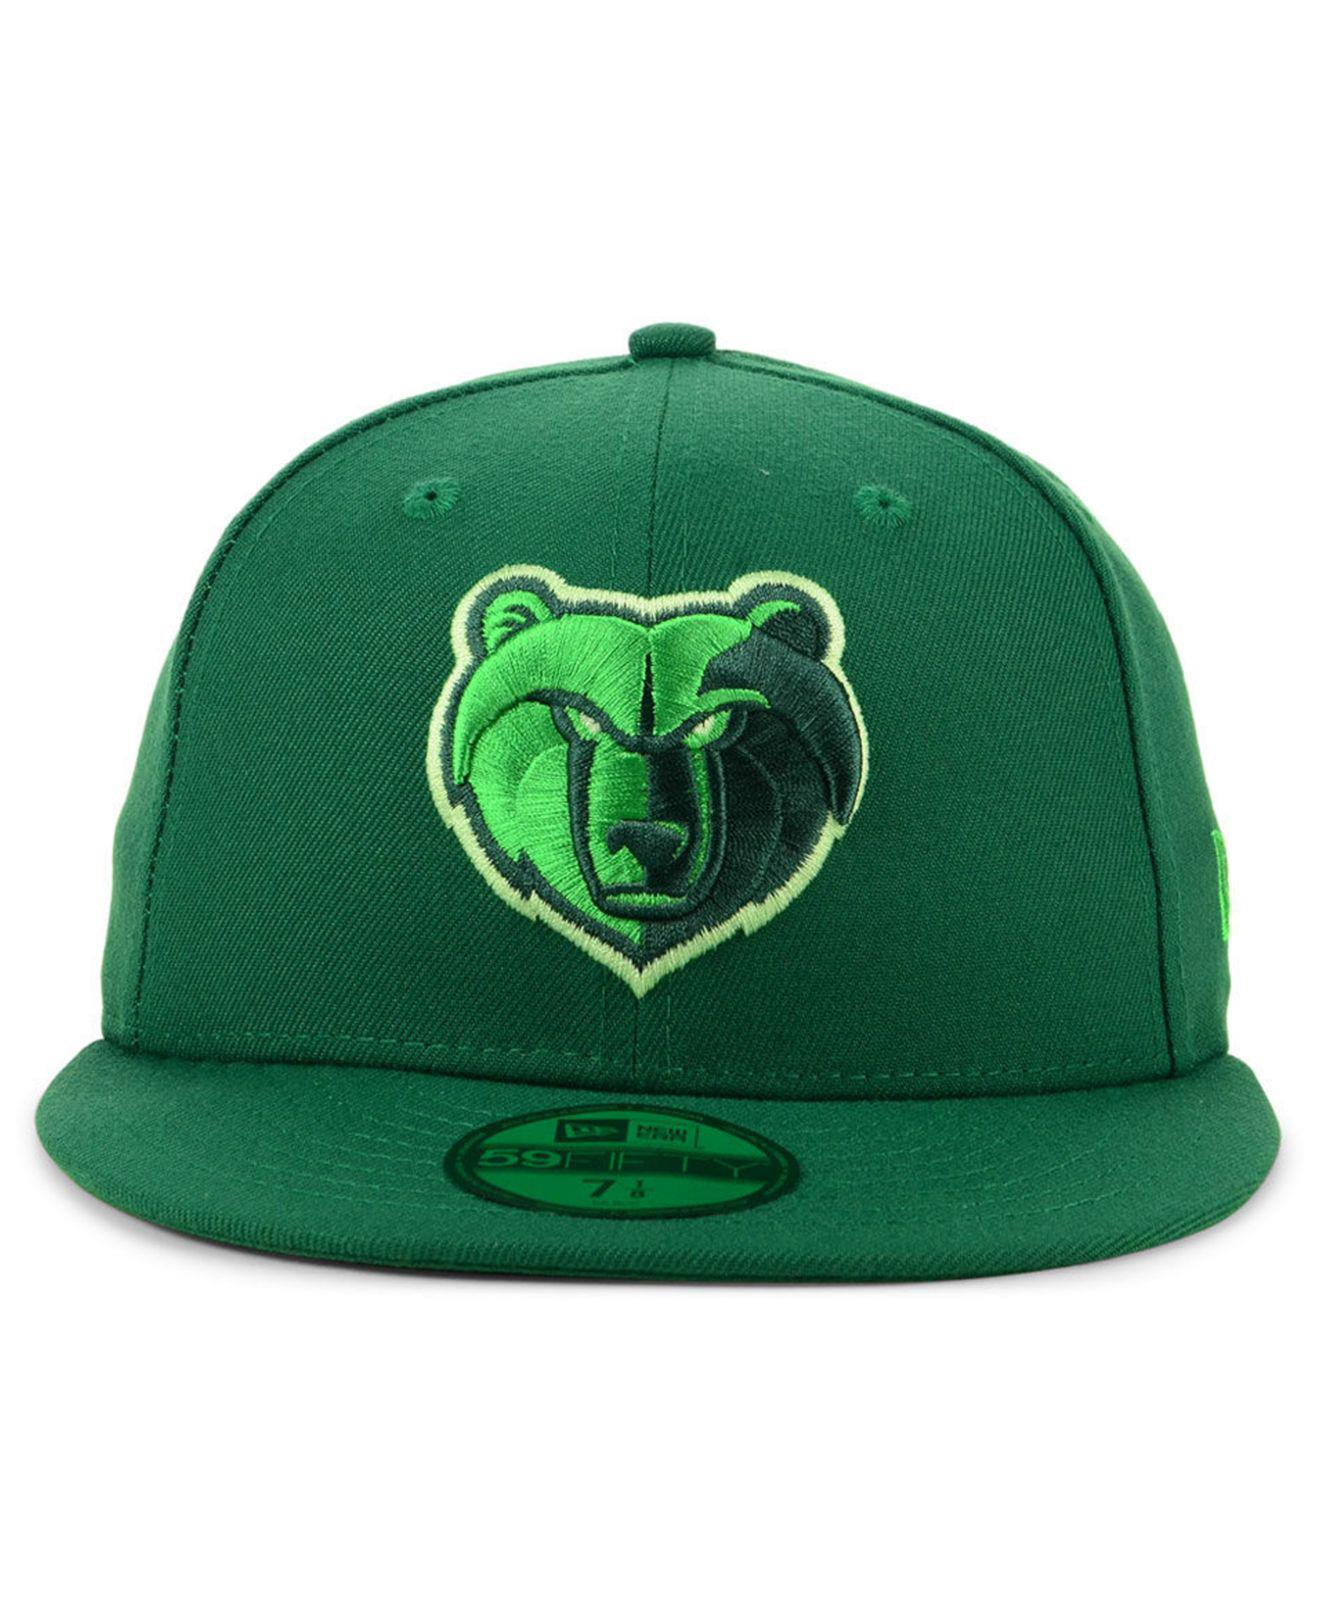 the best attitude 7ba8c a375e ... uk lyst ktz memphis grizzlies color prism pack 59fifty fitted cap in  green for men 5a2b3